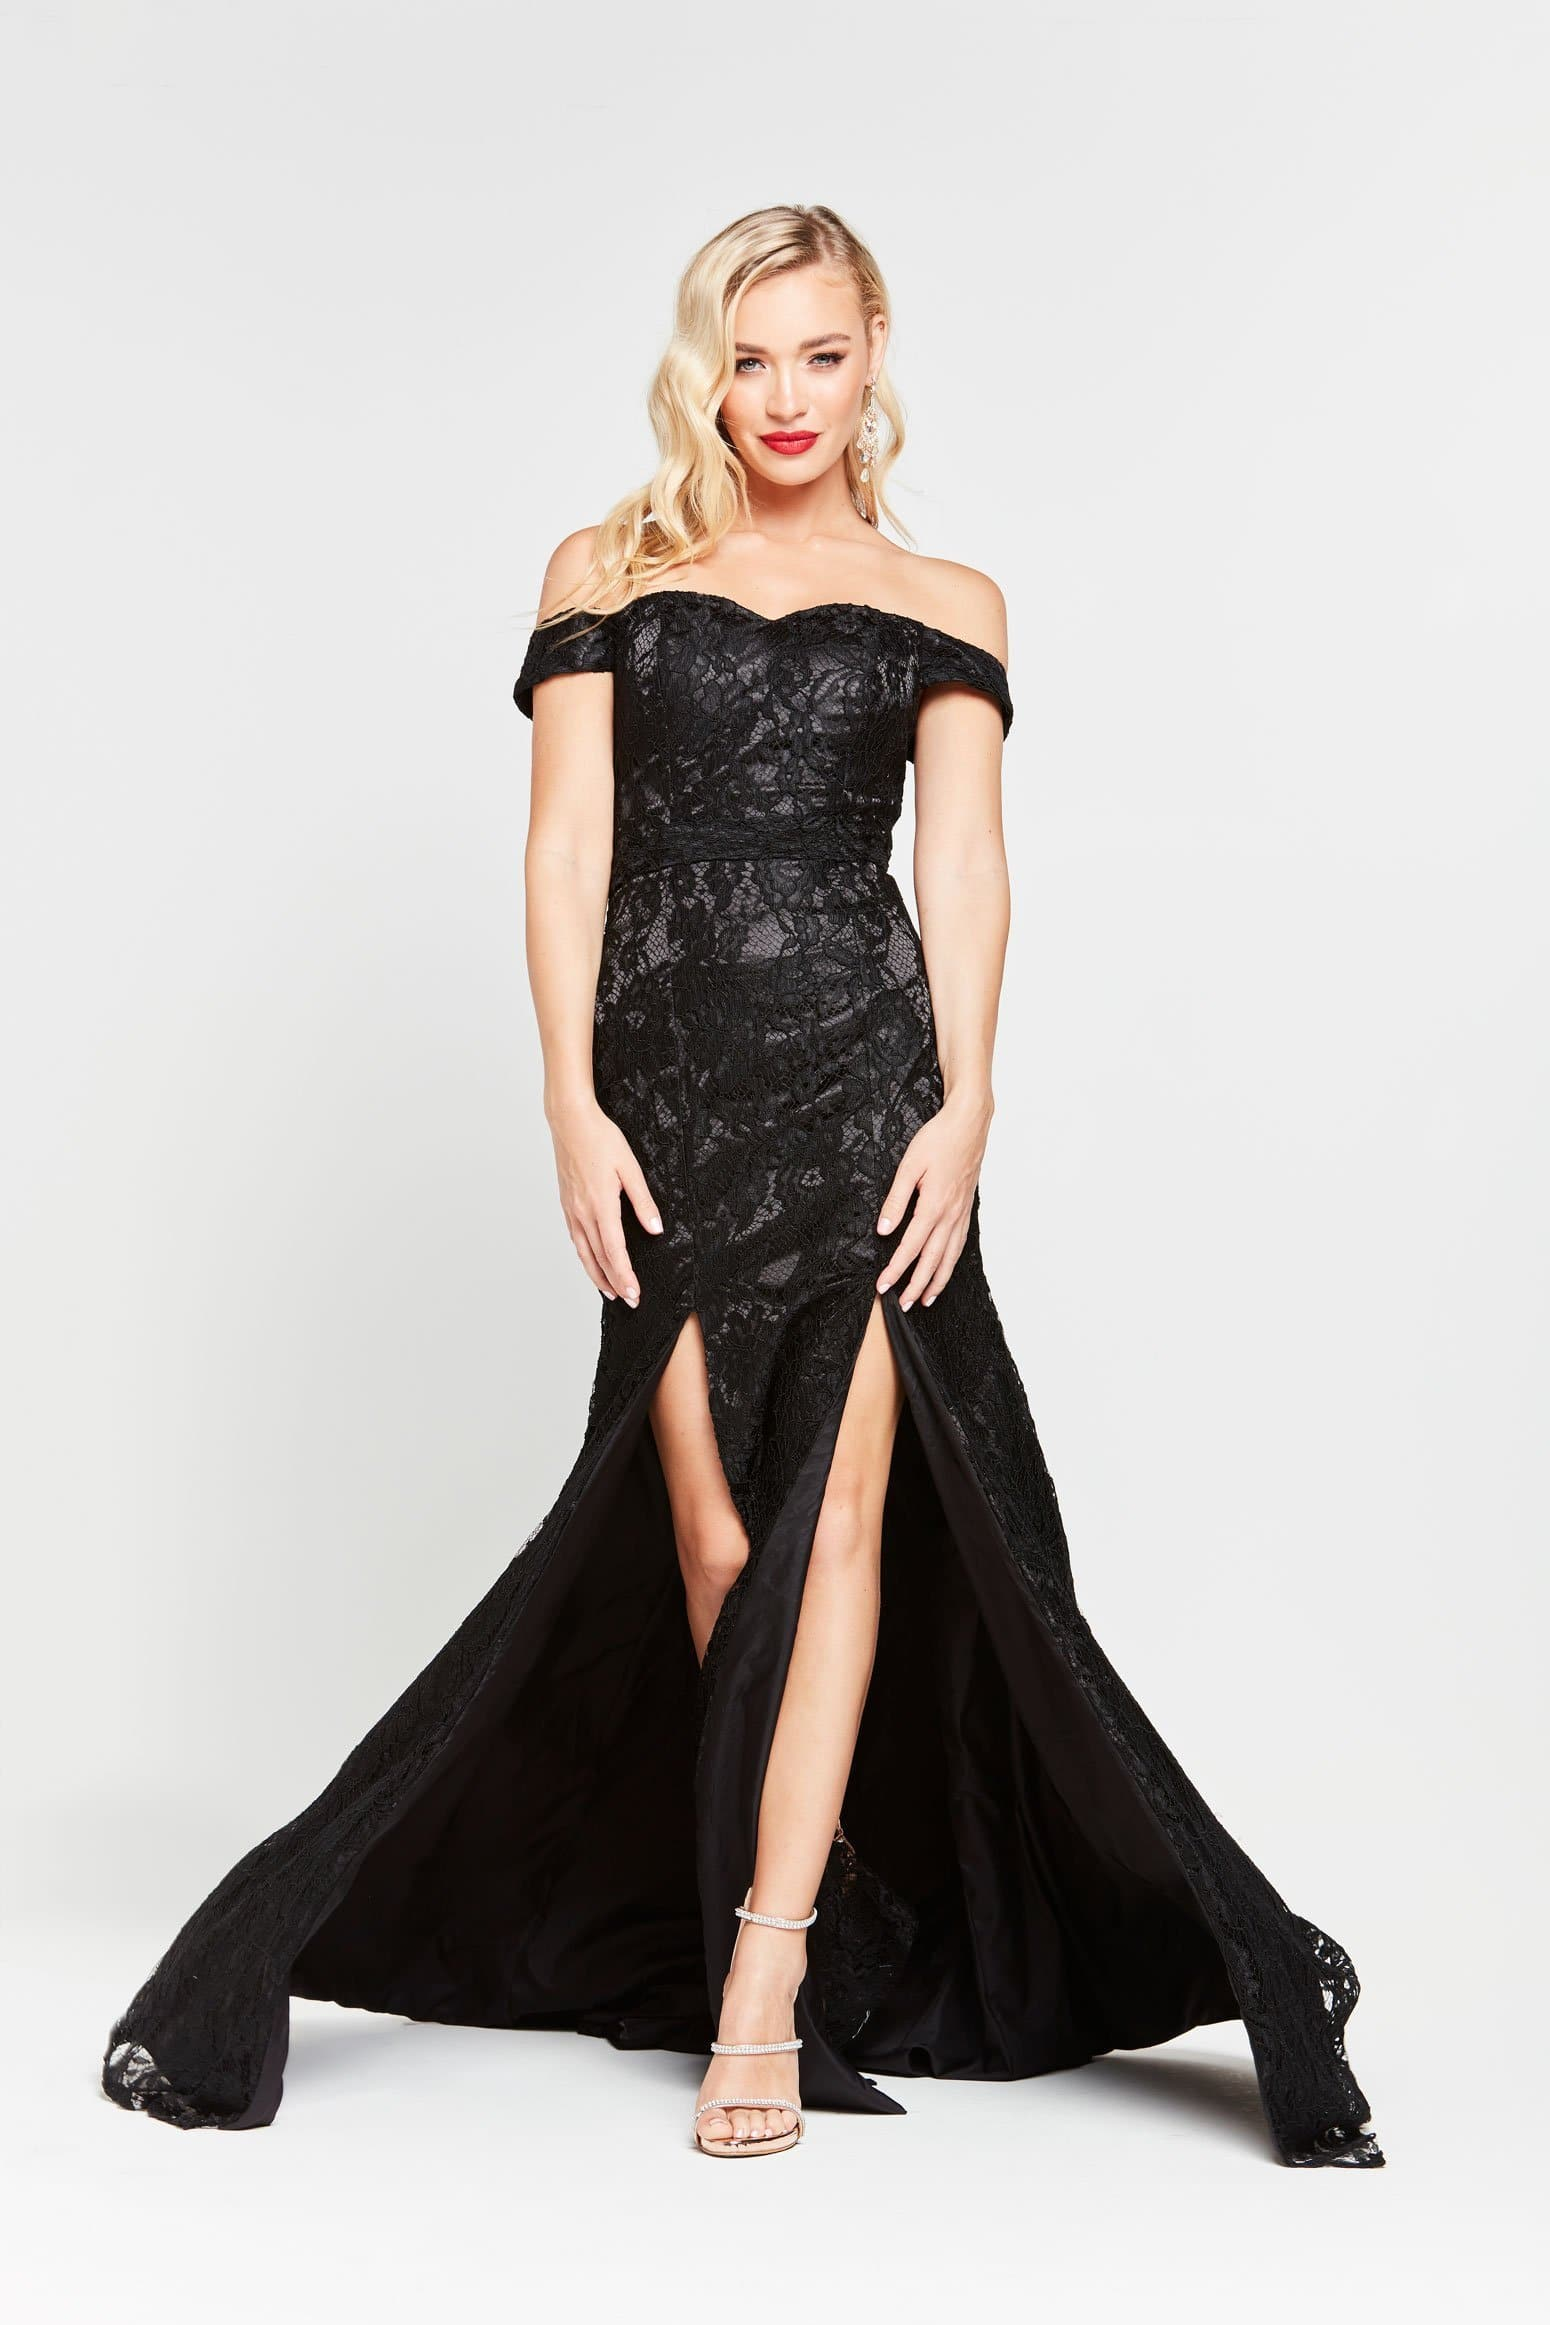 A&N Dahlia - Black Lace Off Shoulder Gown with Two Splits